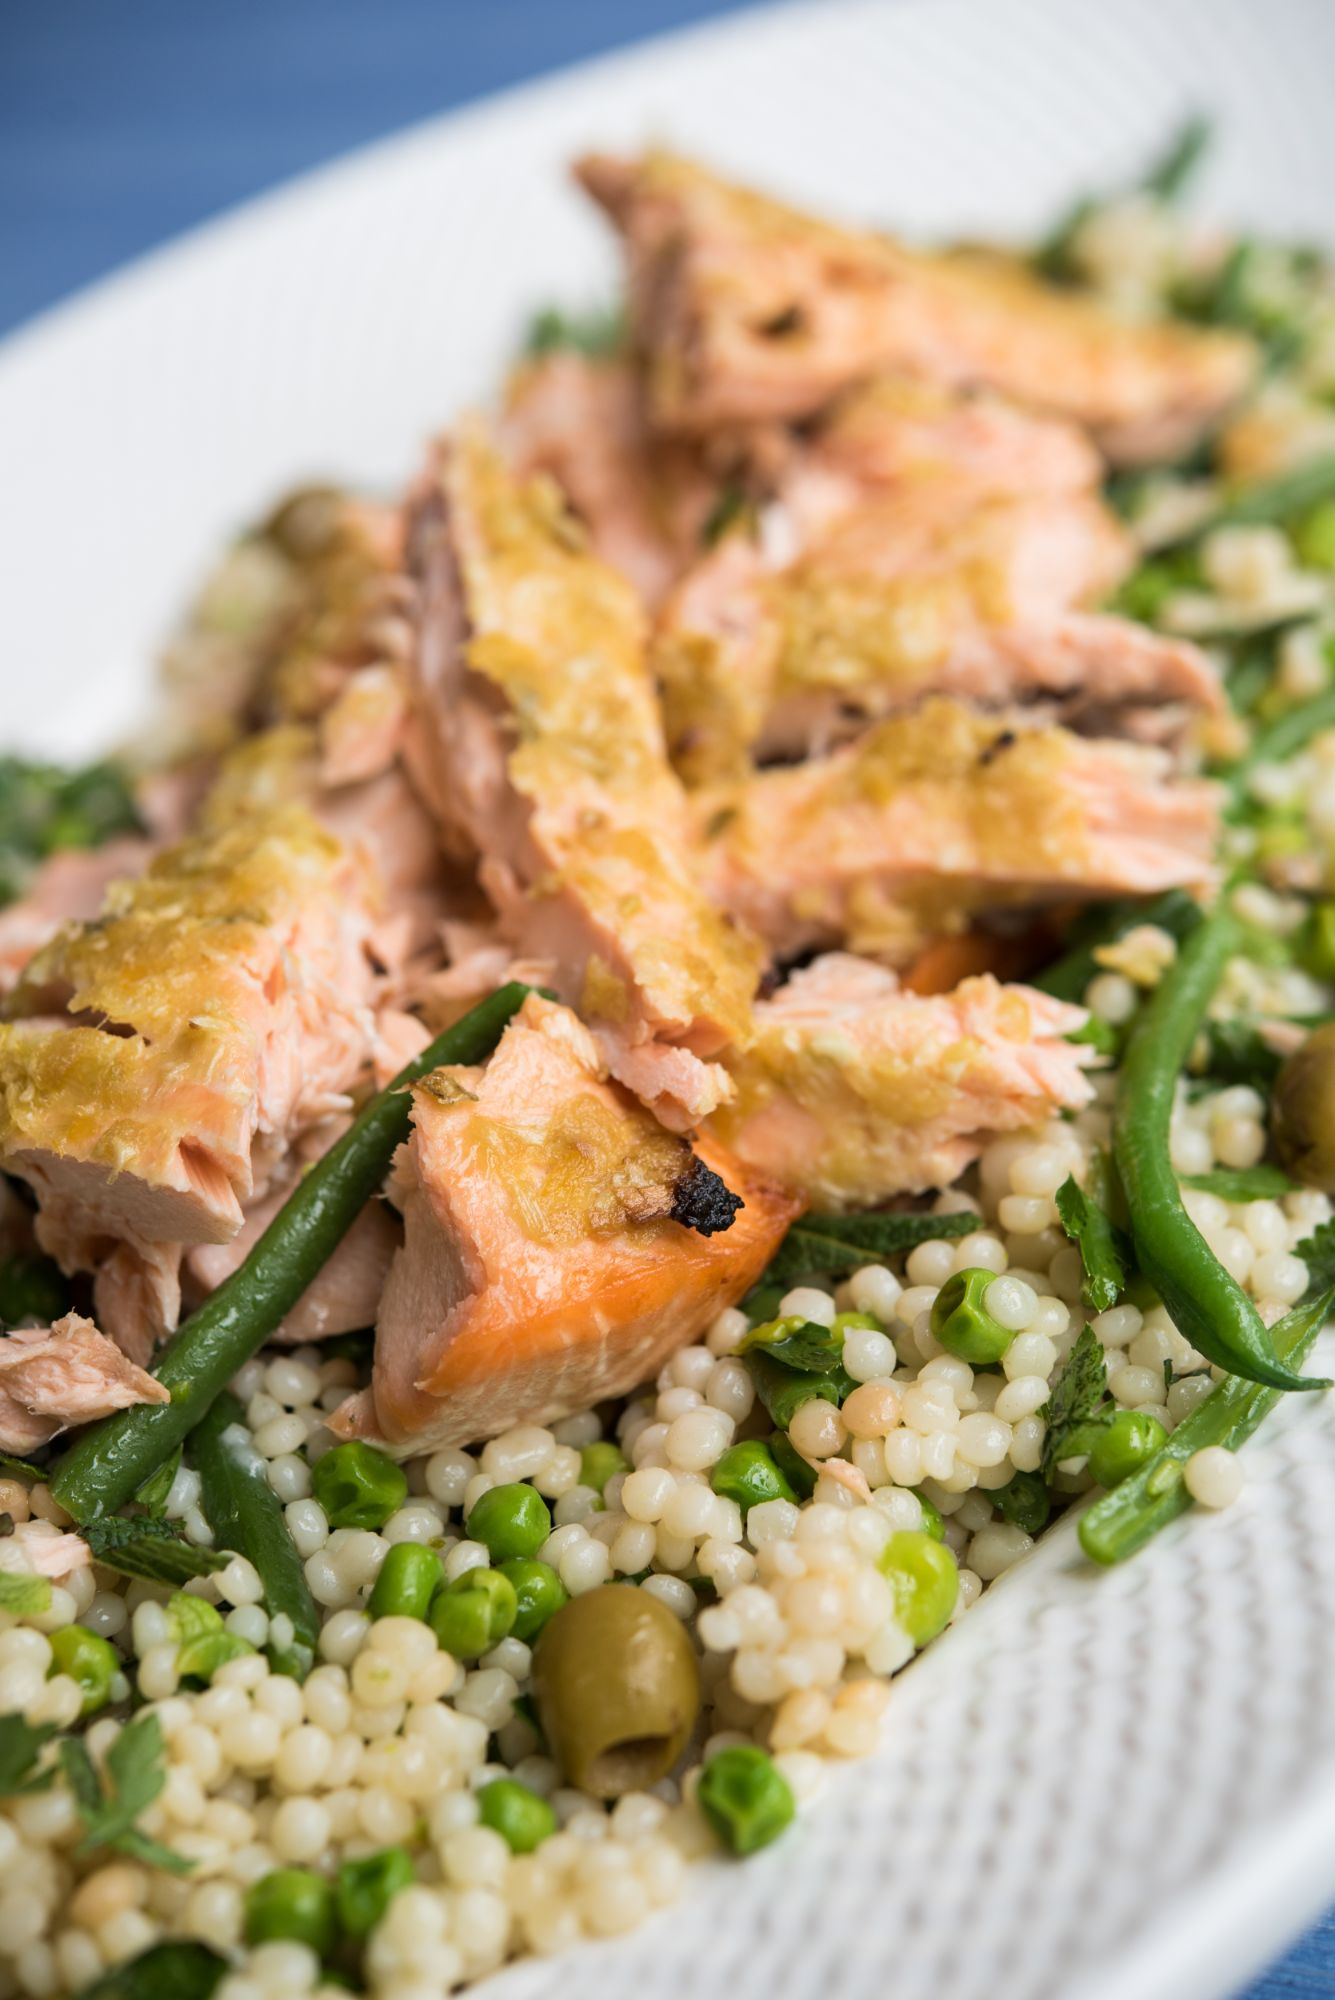 SALMON WITH PRESERVED LEMON AND ISRAELI COUSCOUS